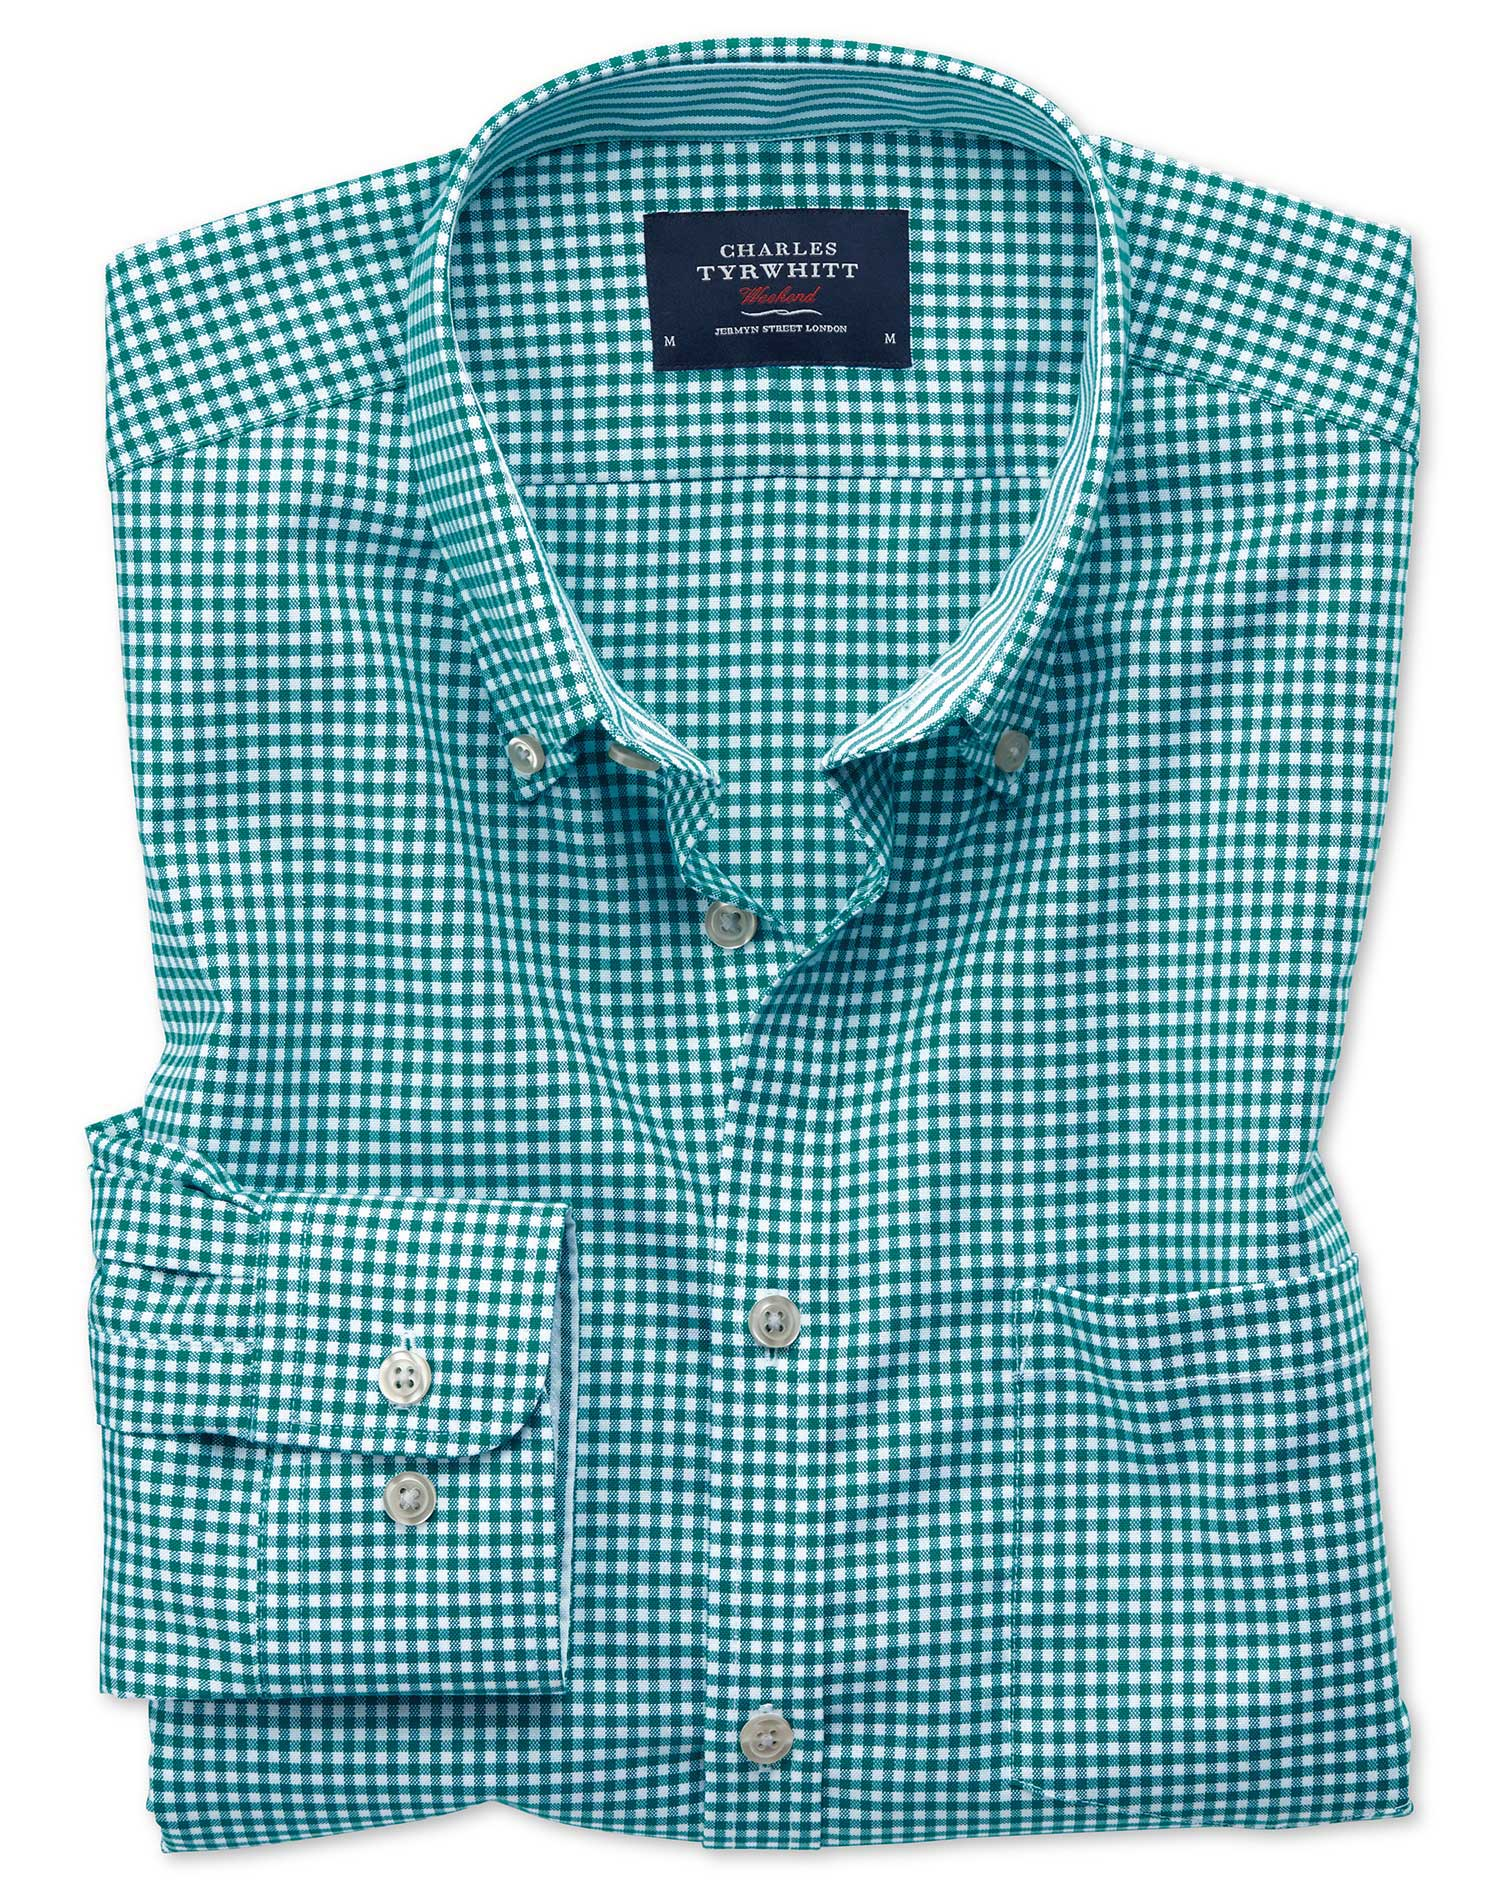 Extra Slim Fit Button-Down Non-Iron Oxford Gingham Green Cotton Shirt Single Cuff Size XXL by Charle